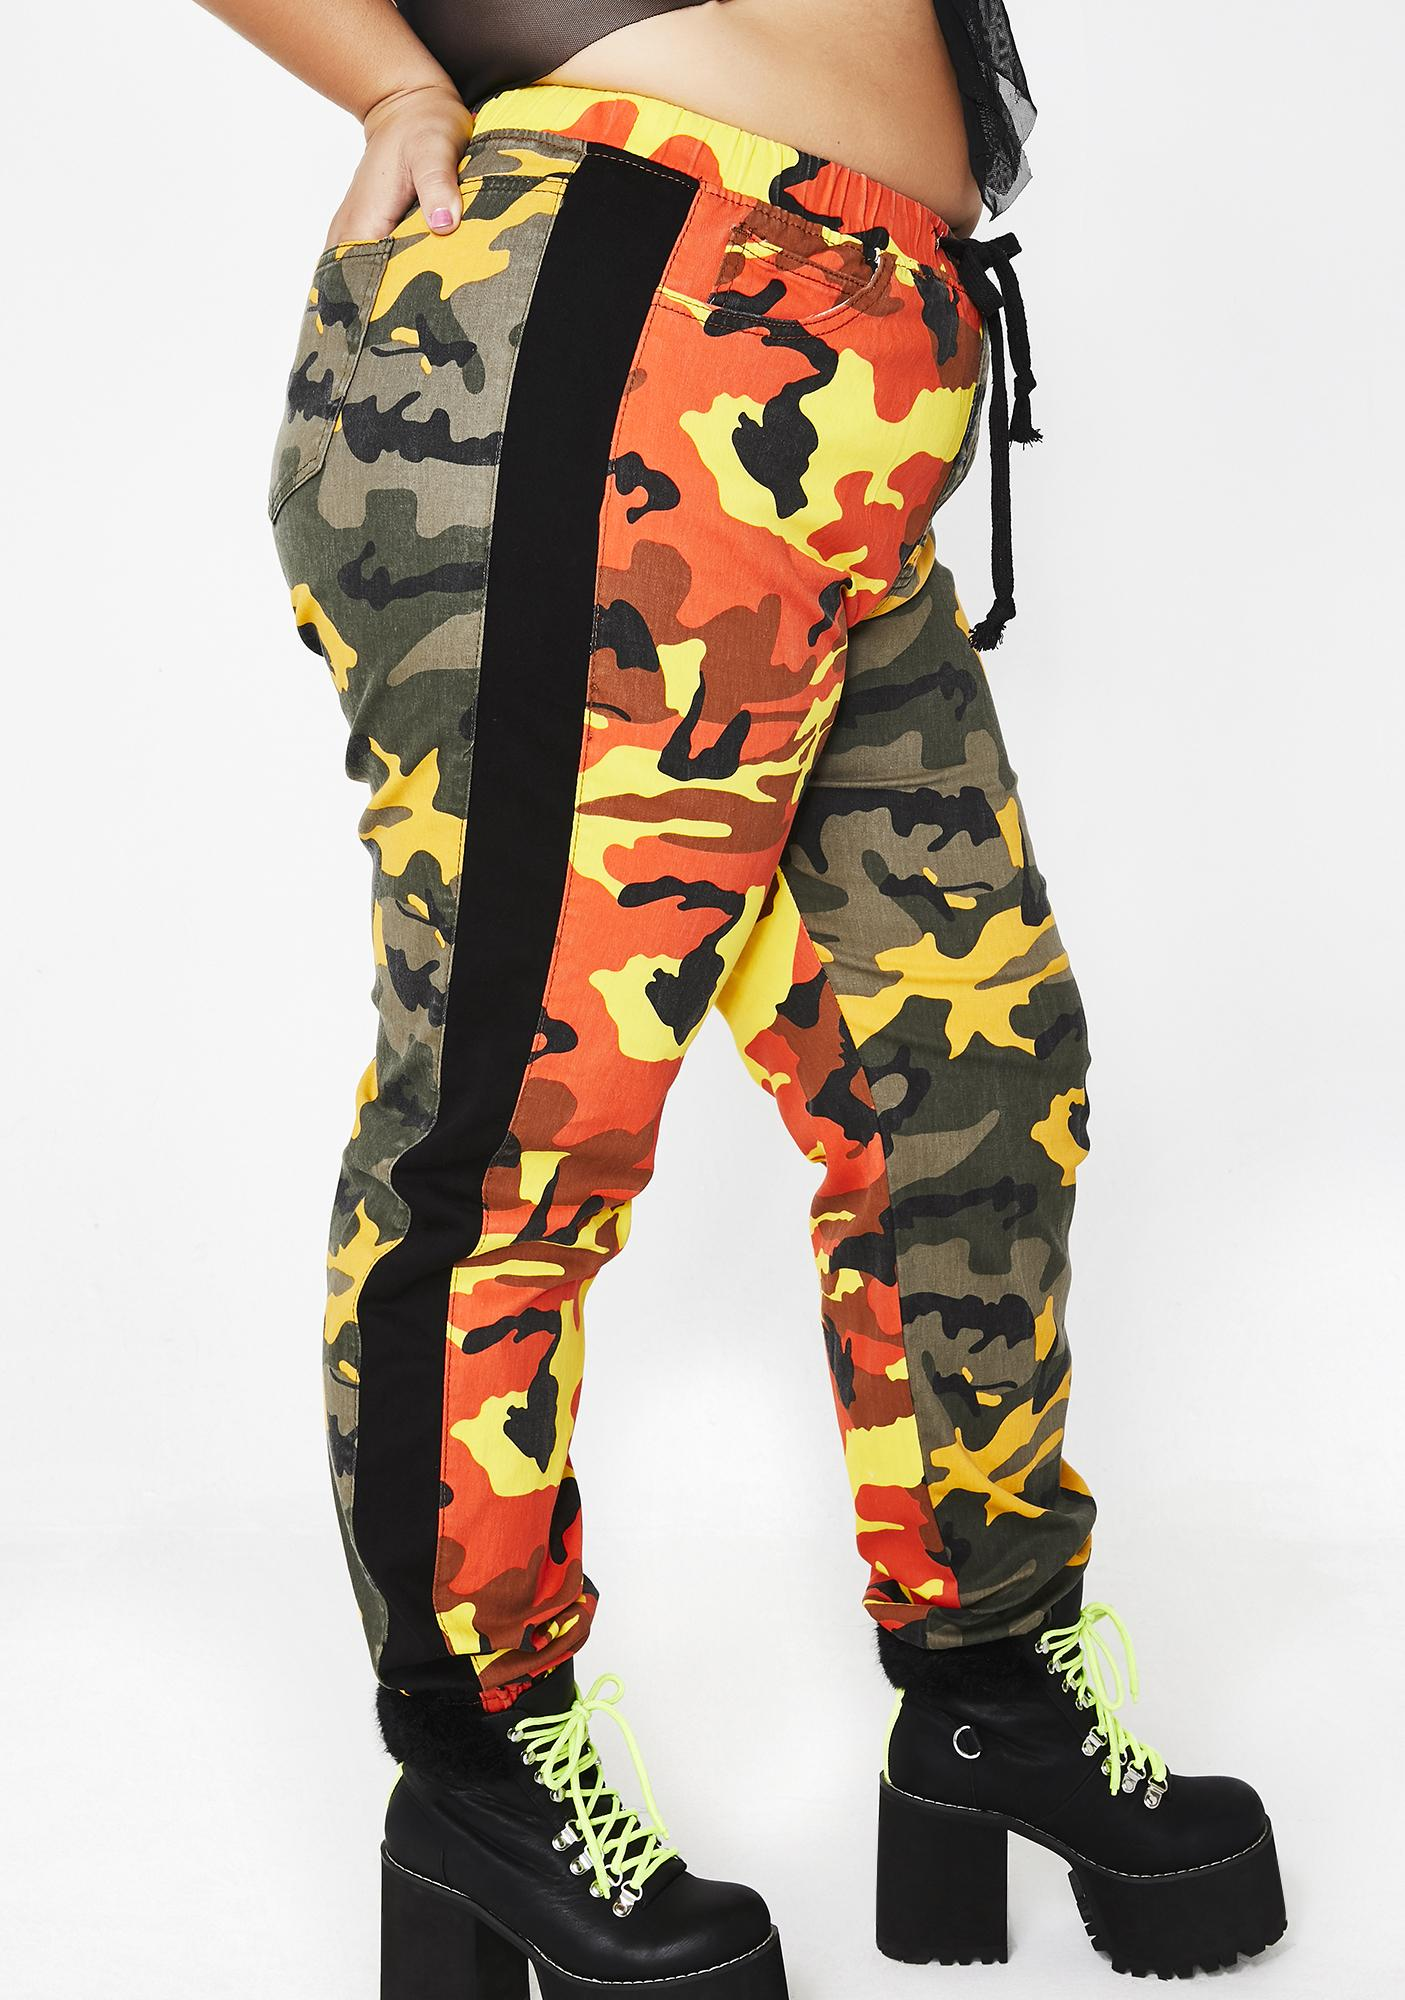 Pants Clothing, Shoes & Accessories Alert Juicy Camoflauge Pants Size Medium